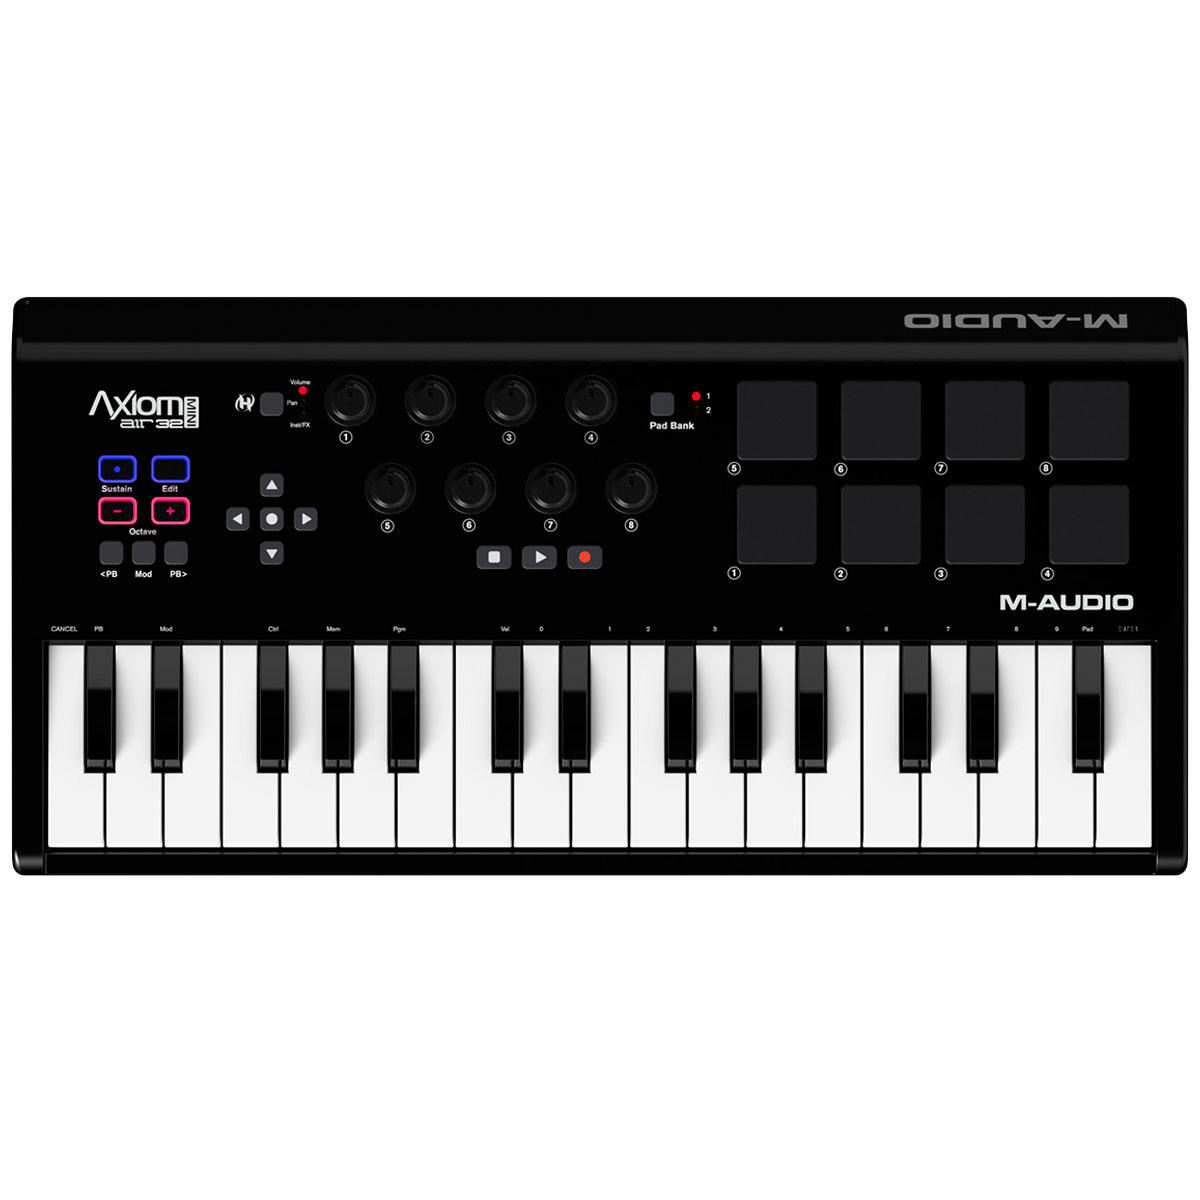 Teclado Controlador MIDI 32 Teclas c/ USB - Axiom AIR Mini 32 M-Audio